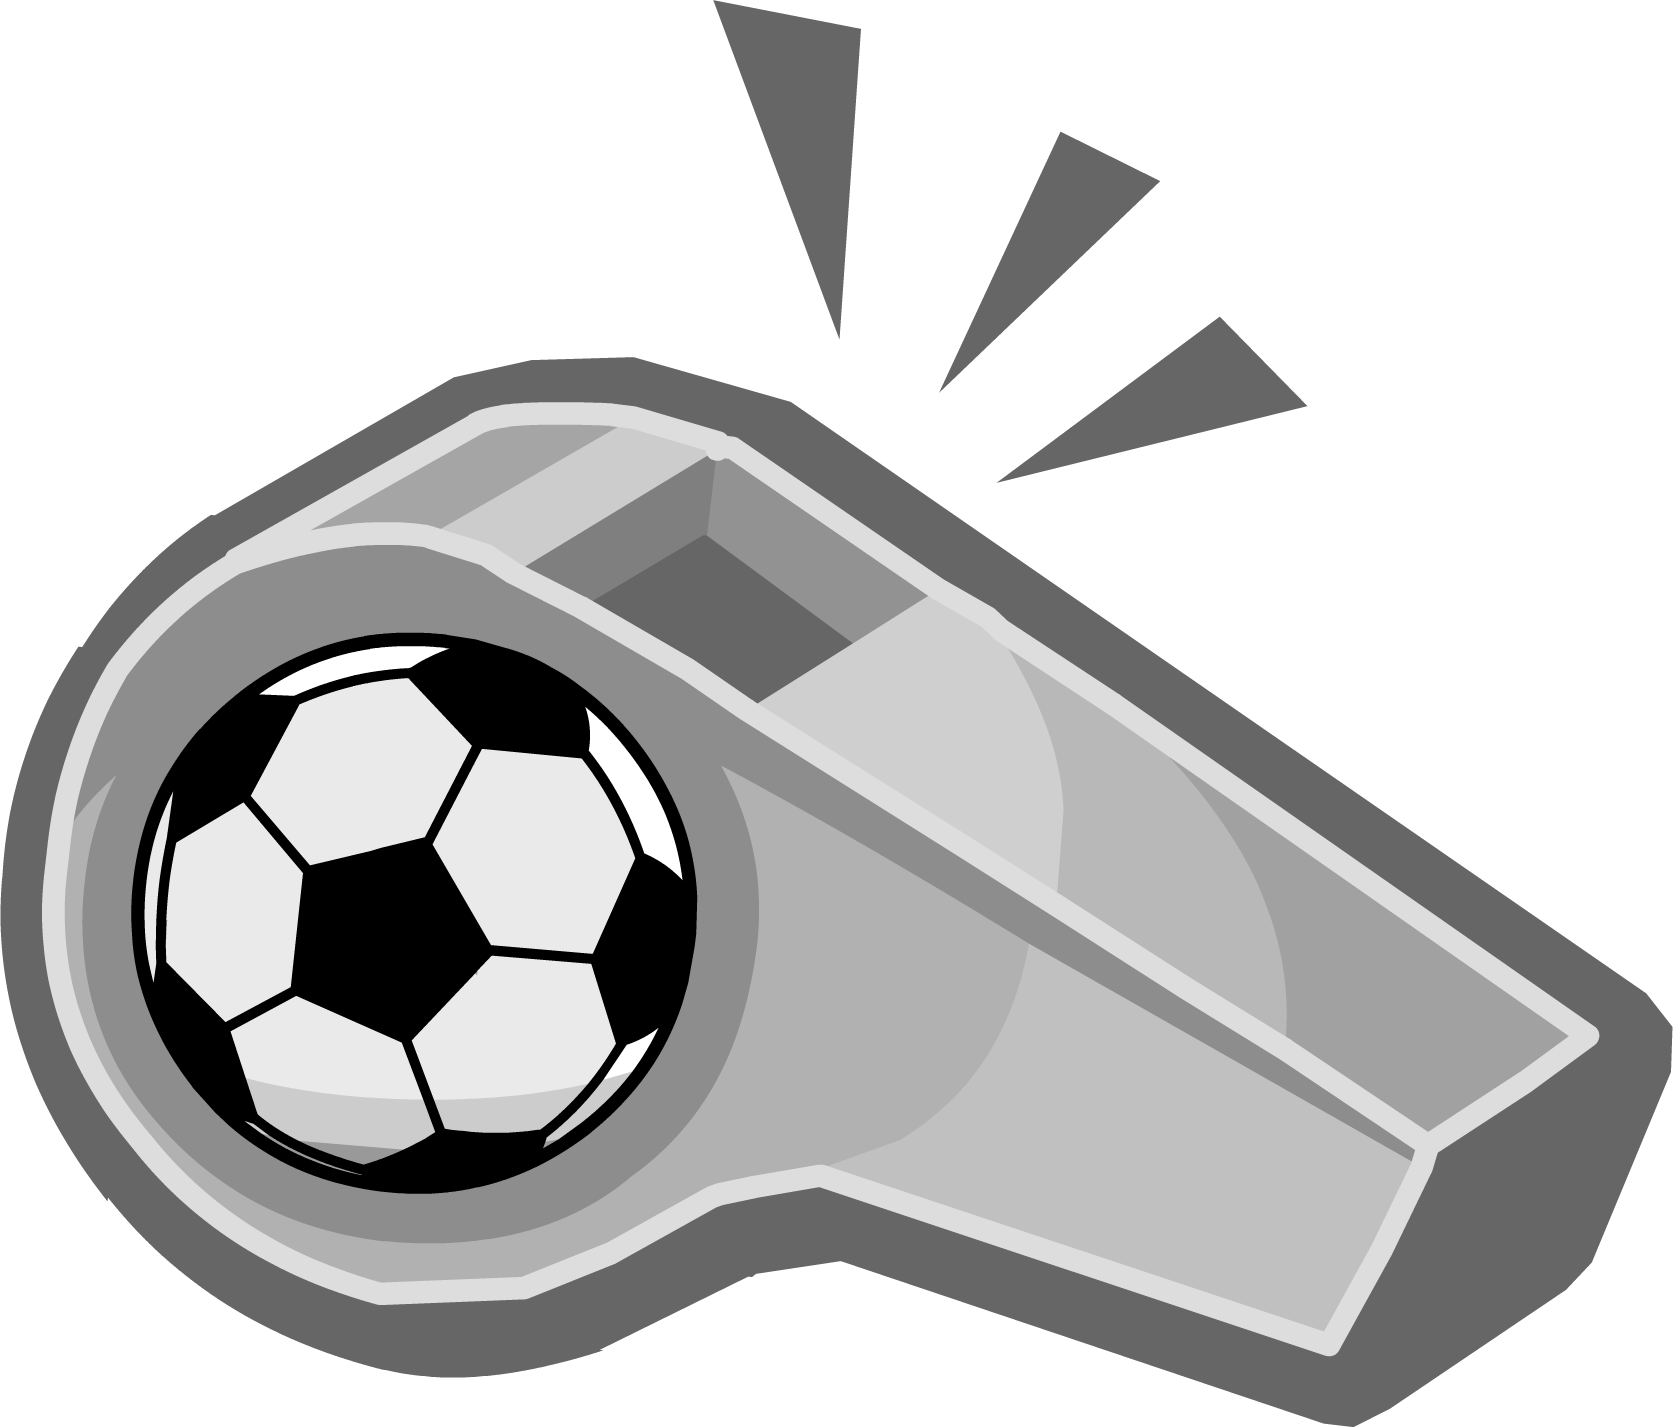 Football whistle clipart svg black and white PNG Whistle Transparent Whistle.PNG Images. | PlusPNG svg black and white